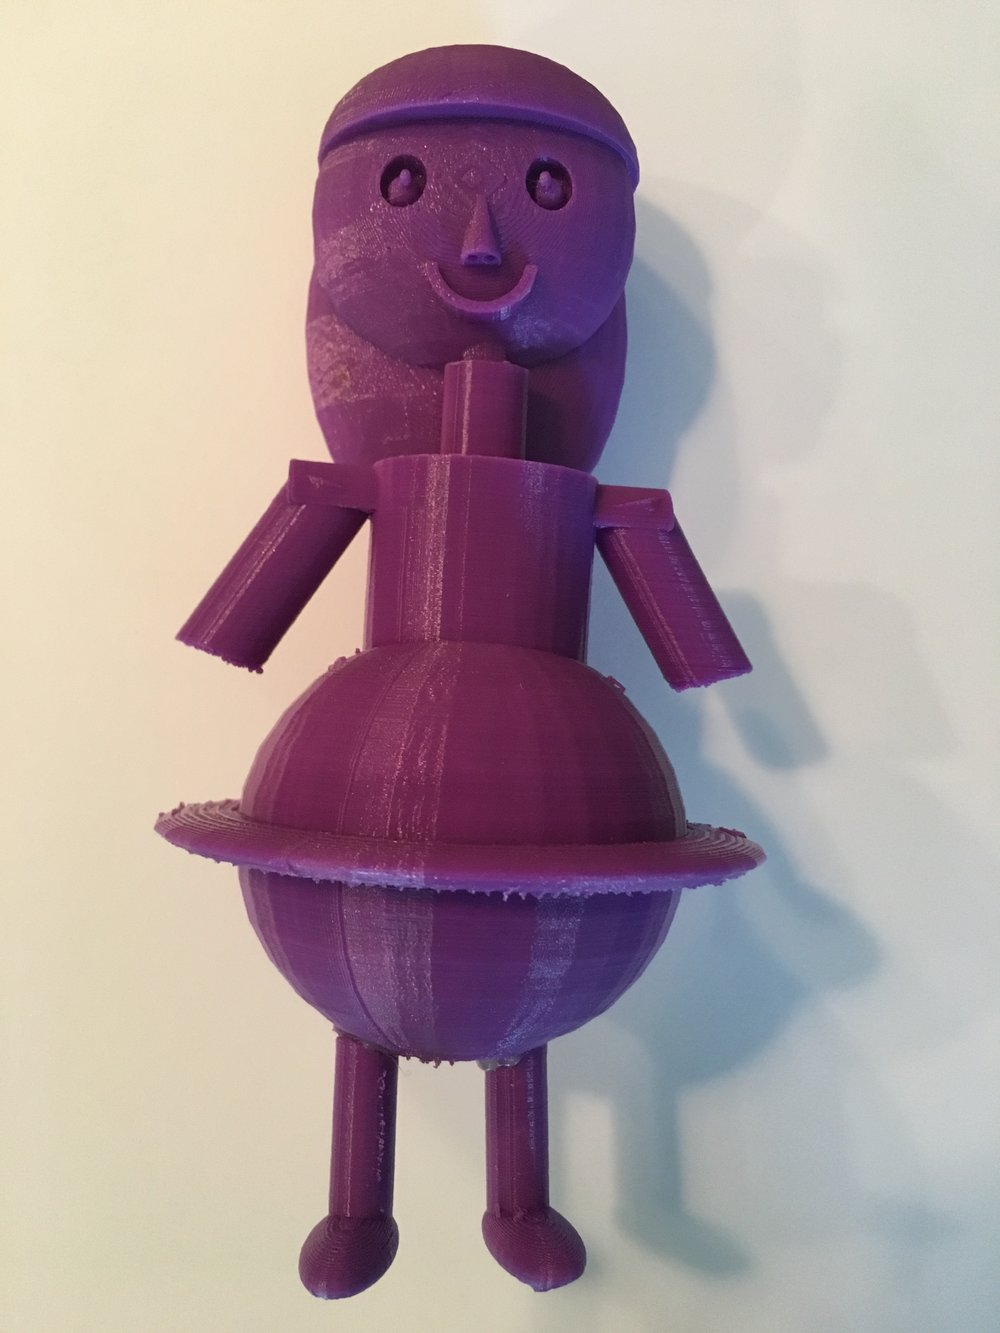 Emily's STEMily, a 3D-printed doll